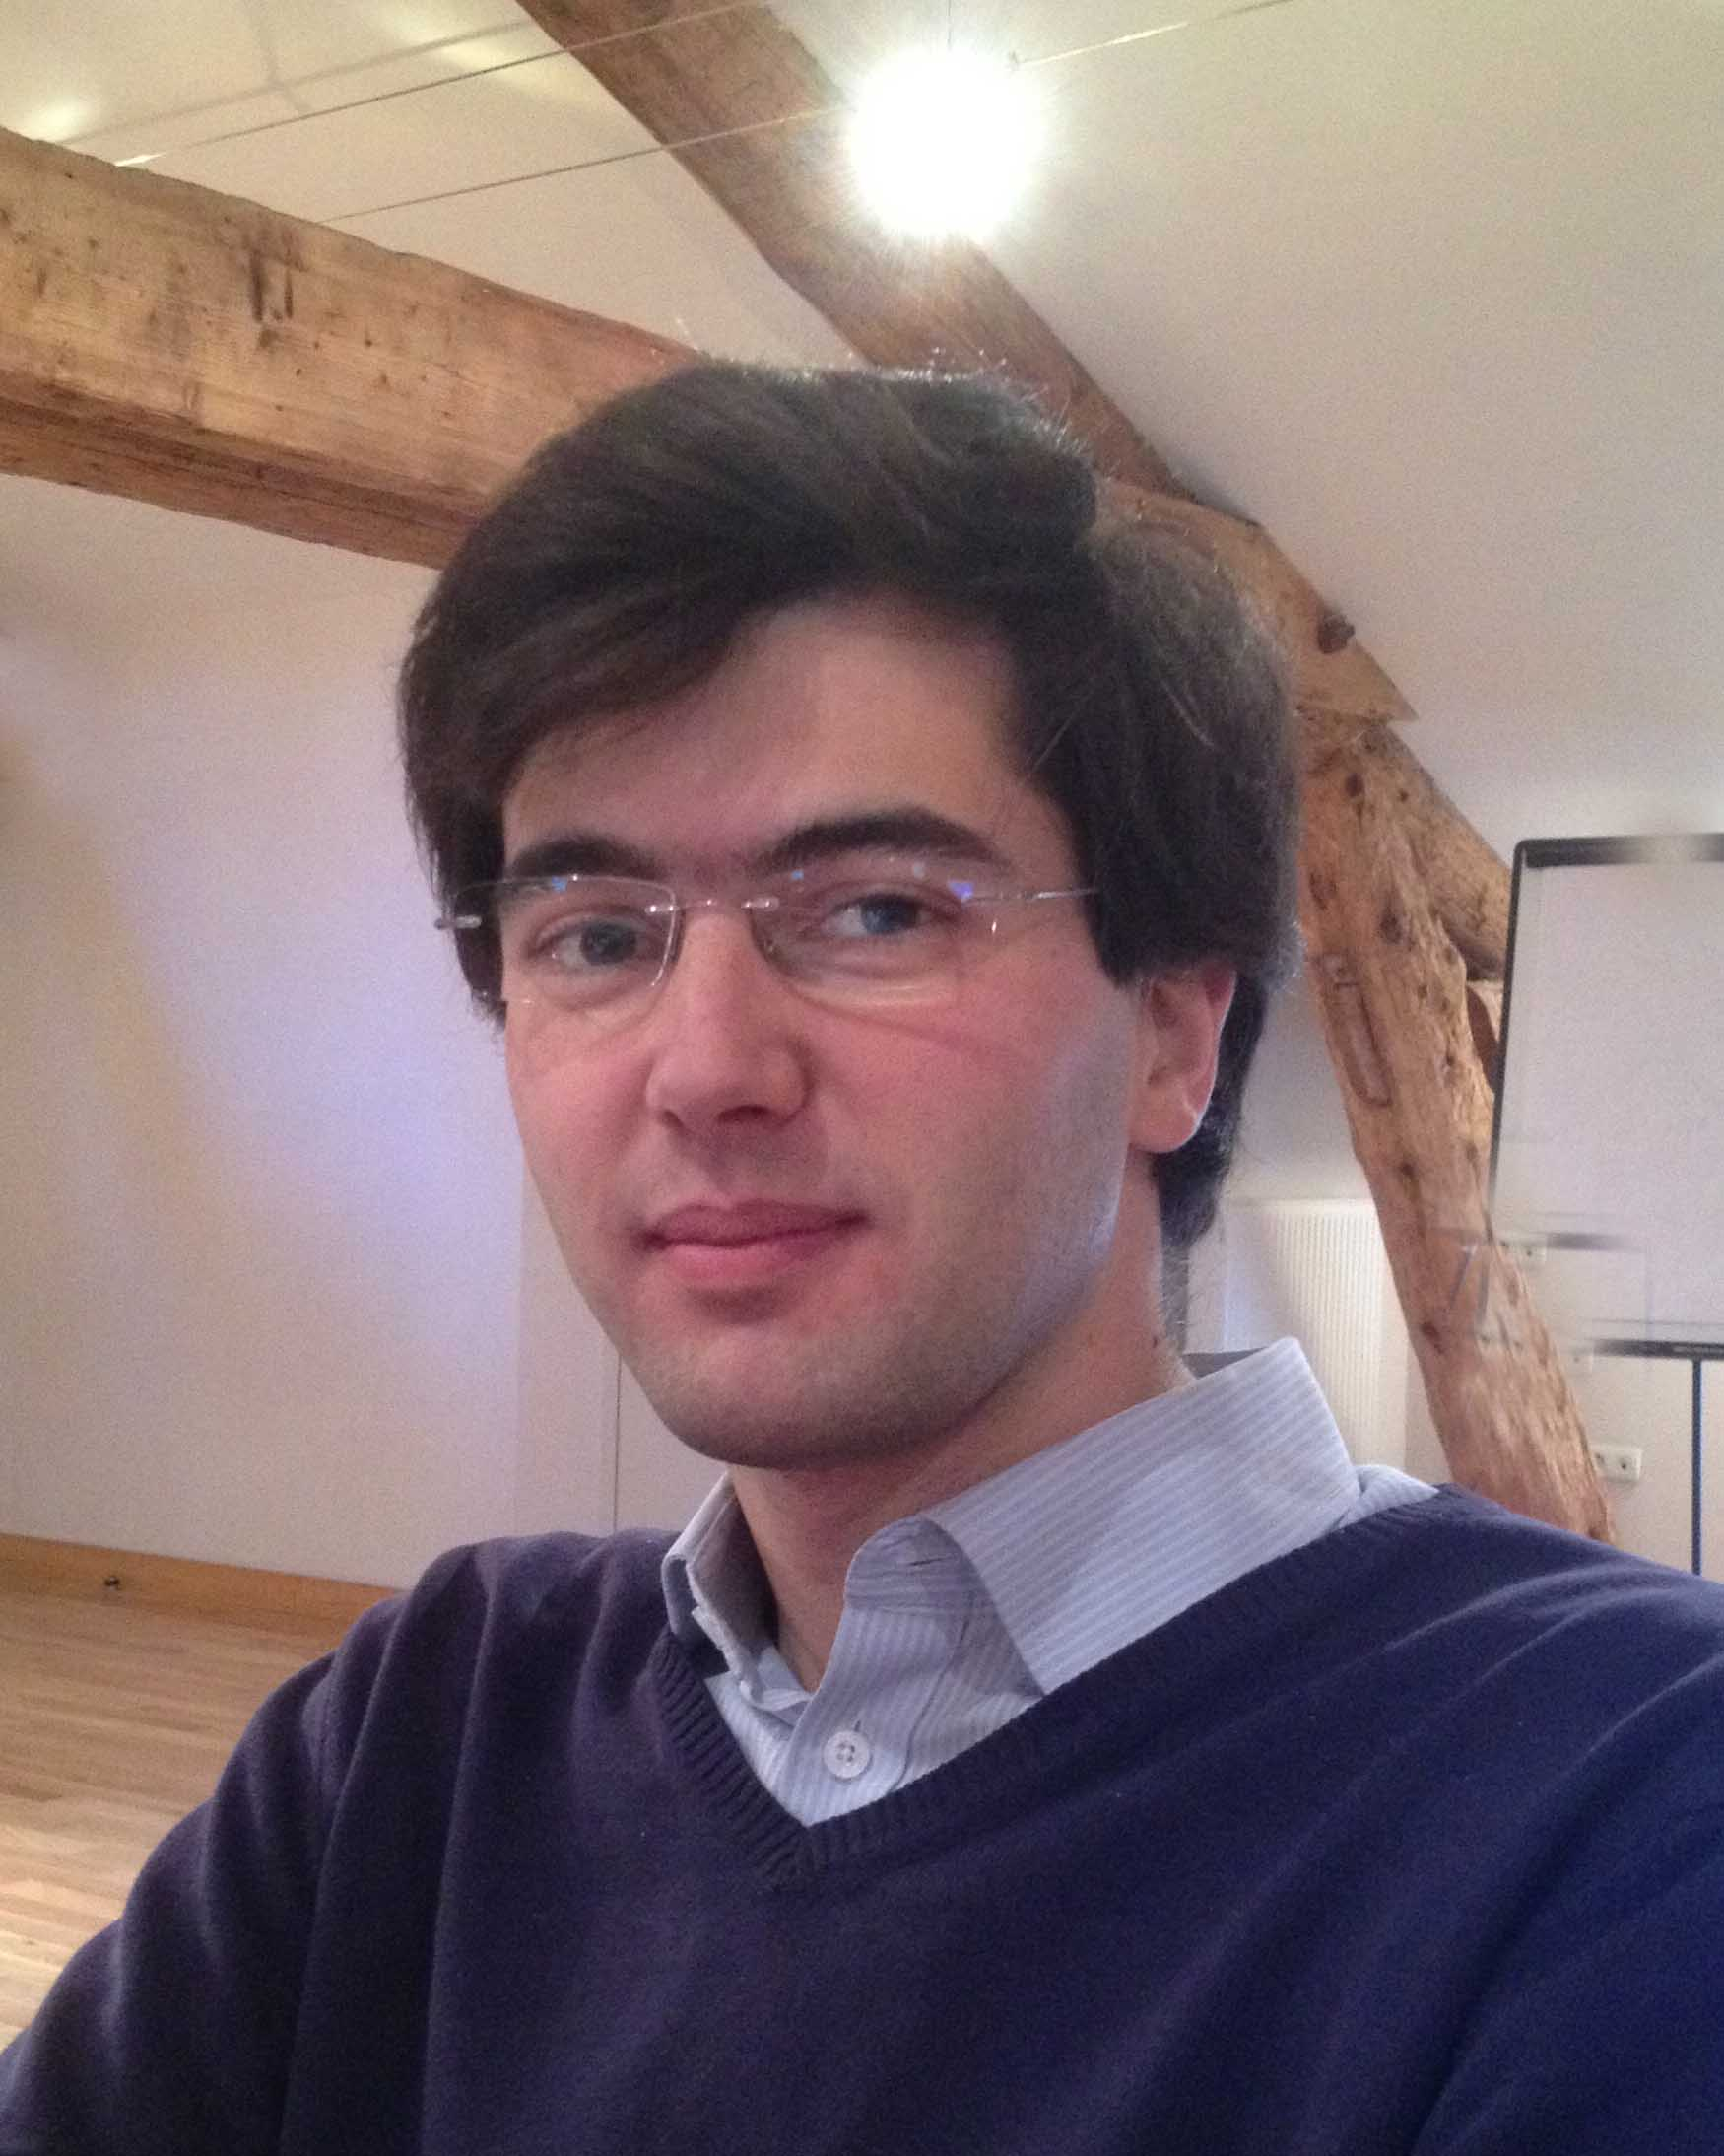 GuillaumeBoyer